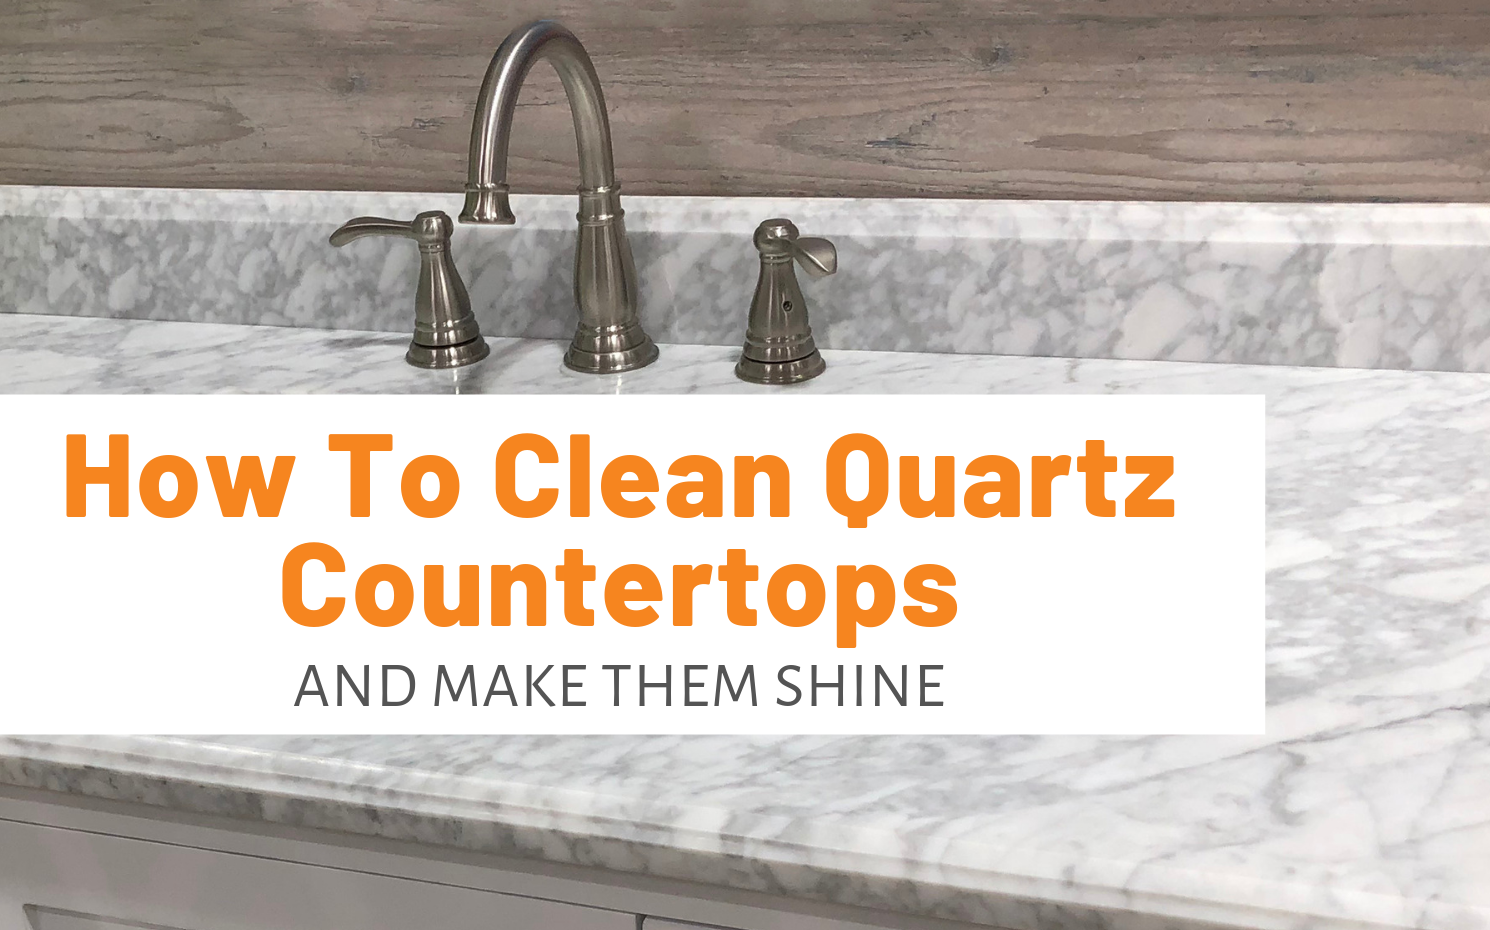 How To Clean Quartz Countertops And